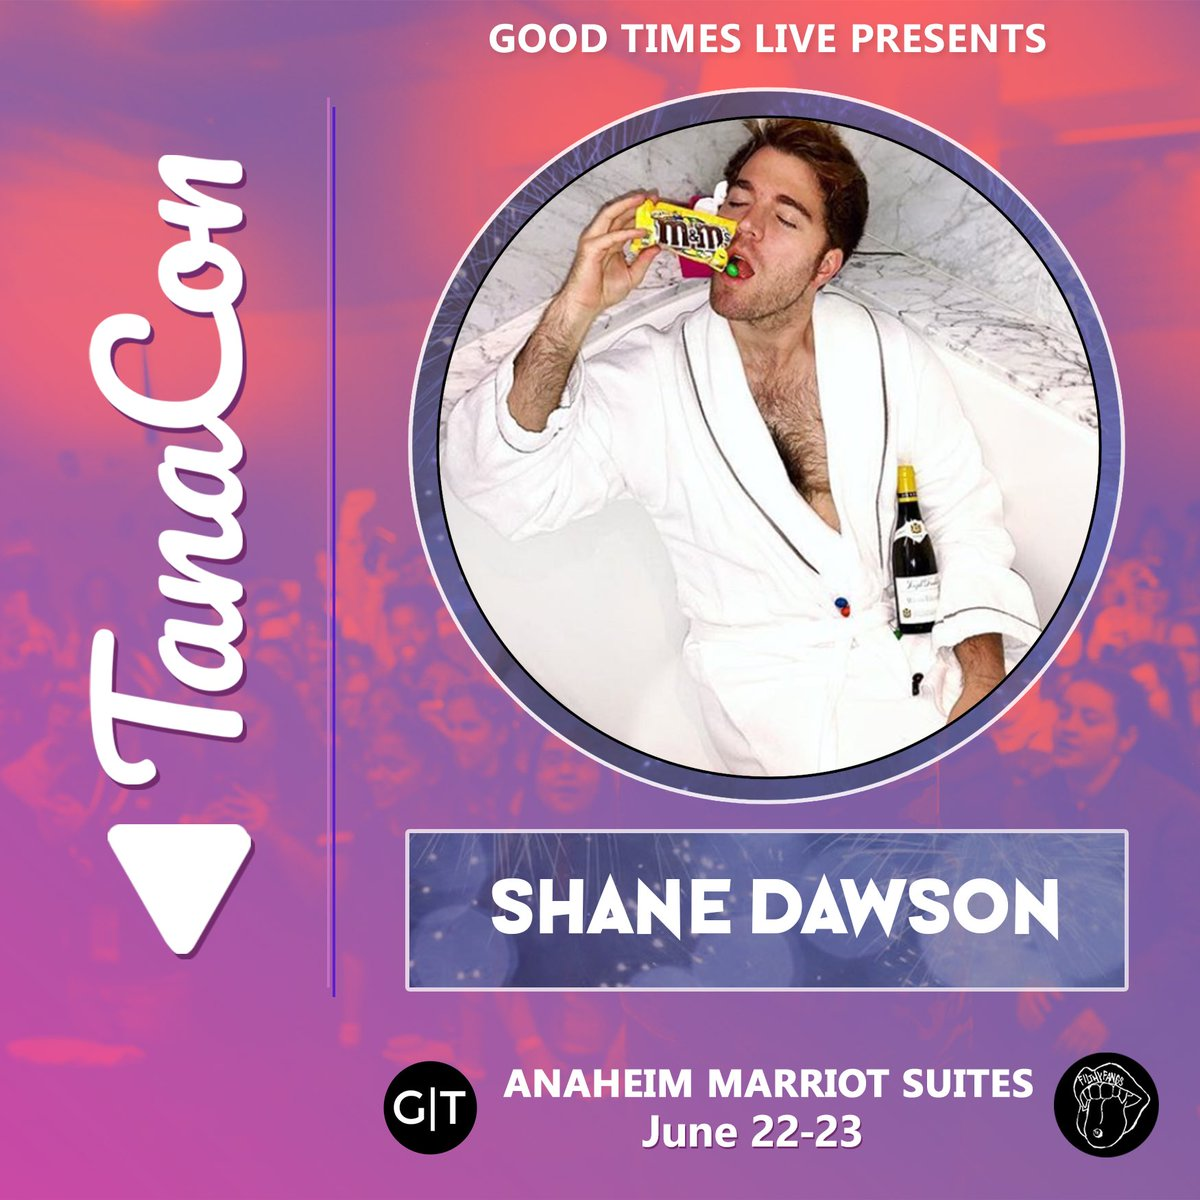 Tana Mongeau On Twitter My Heart And Soul Is Not Ready To Announce My First And Most Important Special Guest For Tanacon